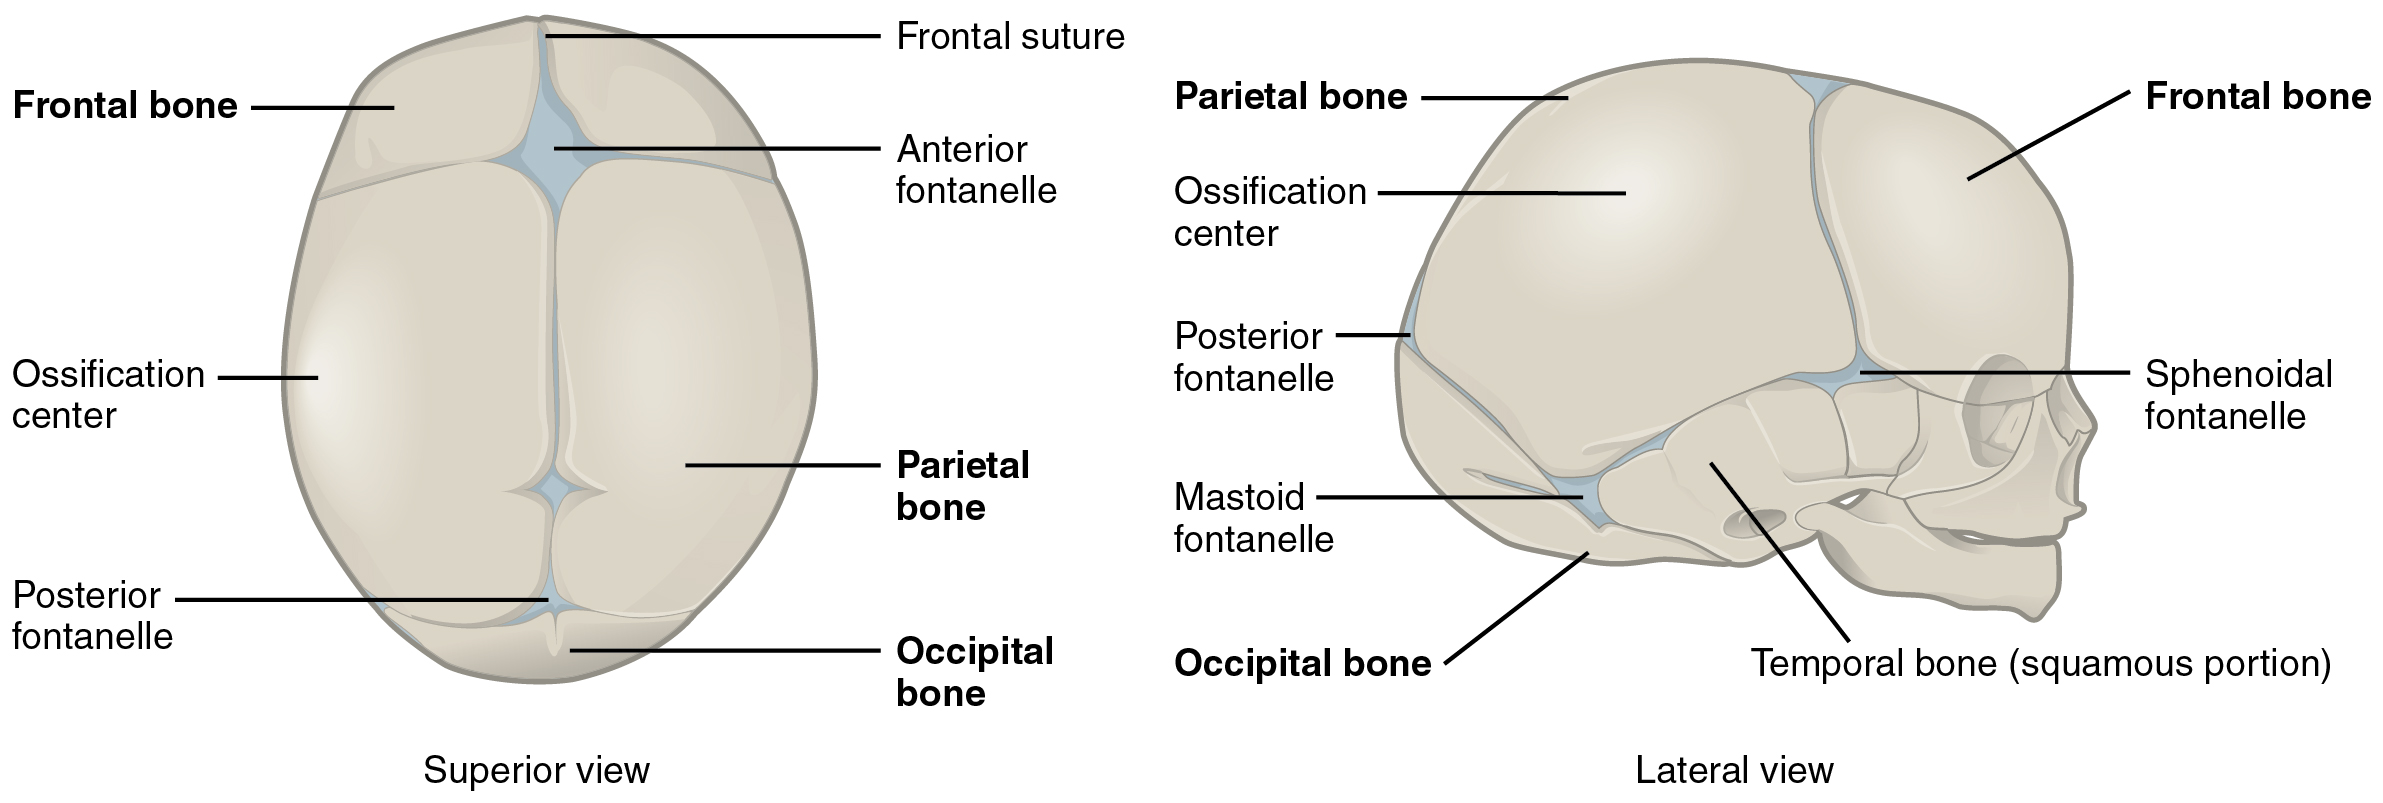 Embryonic Development of the Axial Skeleton · Anatomy and Physiology